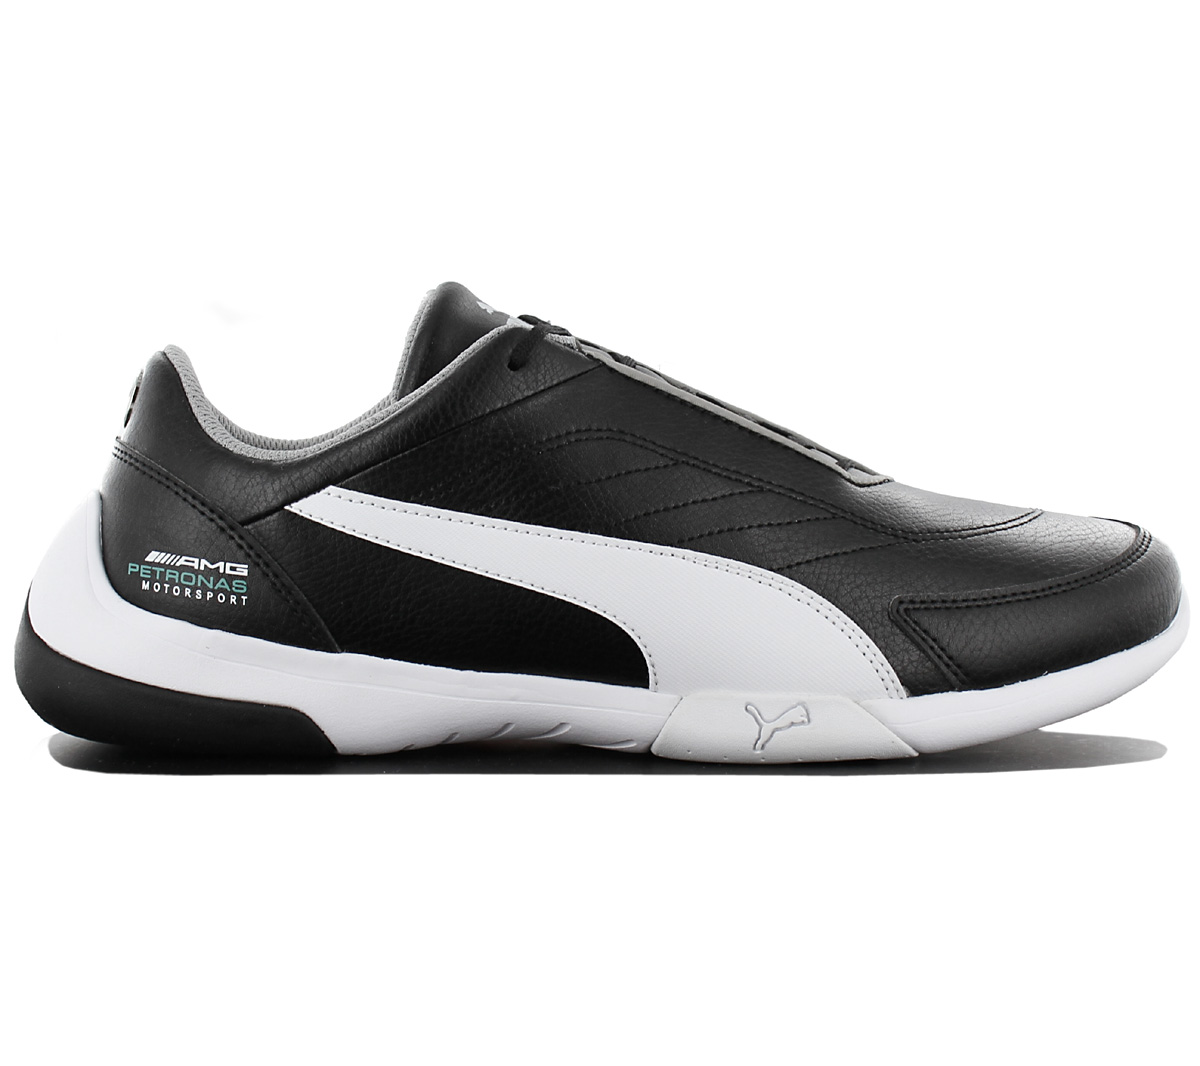 III about Shoes 306244 02 Mercedes Details Puma Mens NEW Cat title Kart original show Petronas AMG Sneakers mOyn0NPv8w